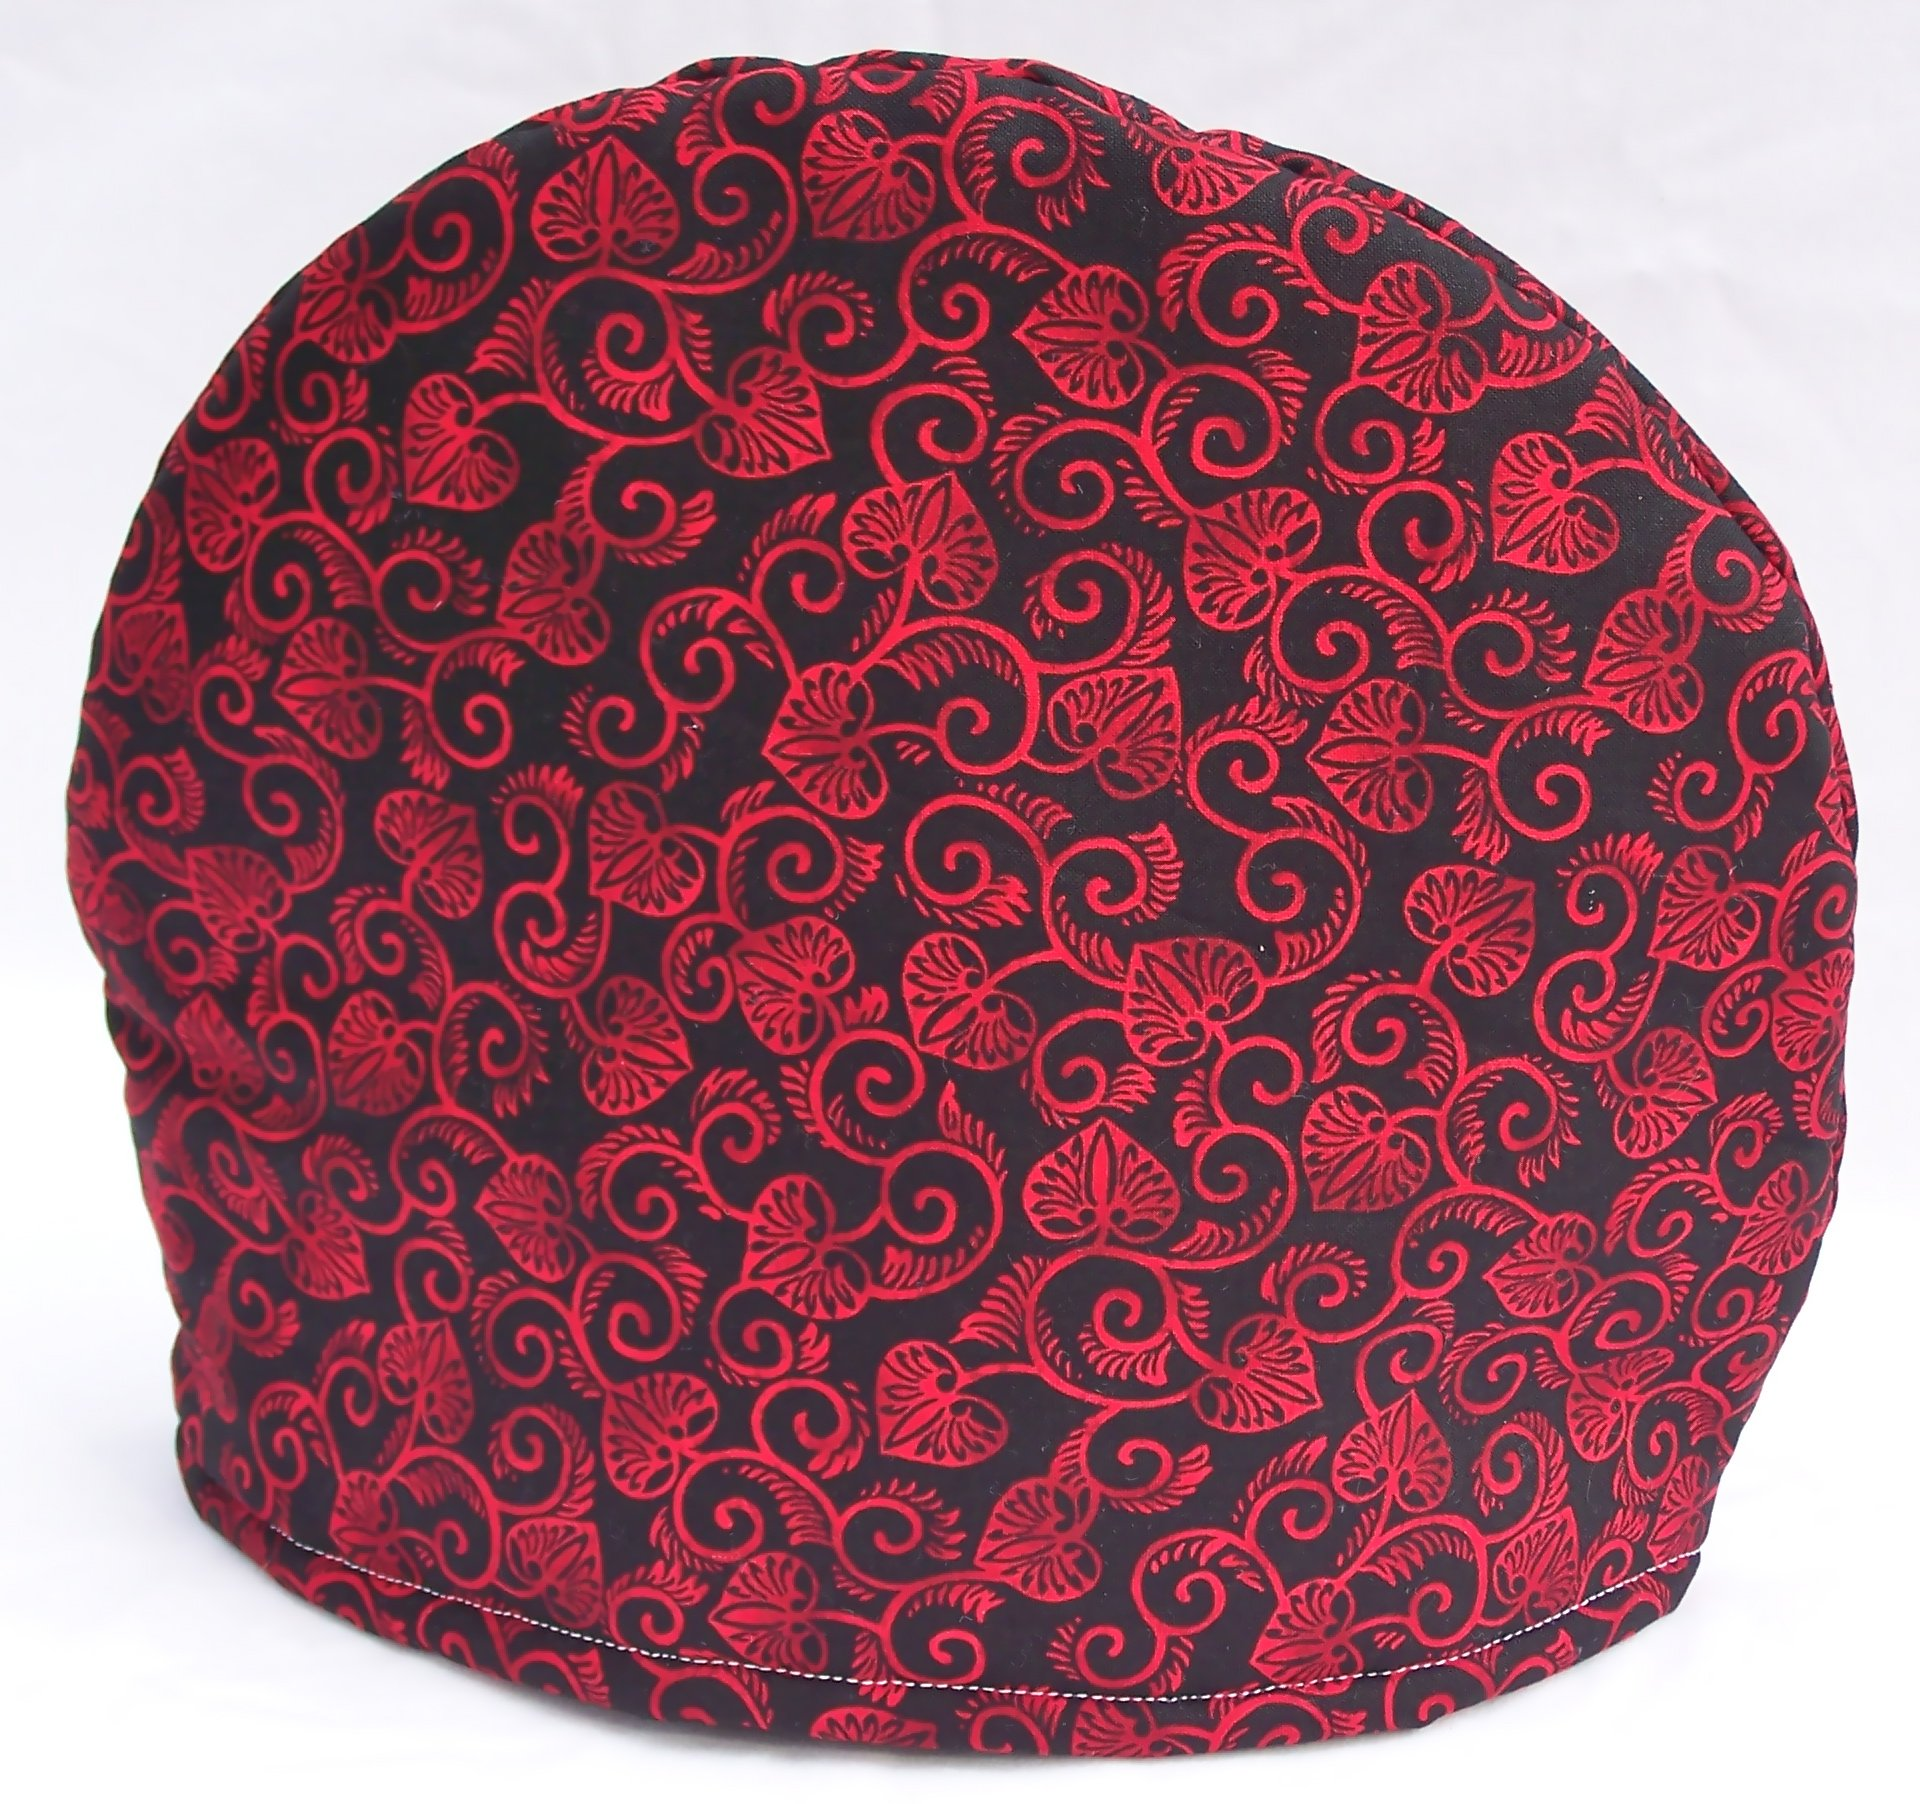 Fabric Tea Cozy - Lined and Padded For Warmth - Red and Black French Toile